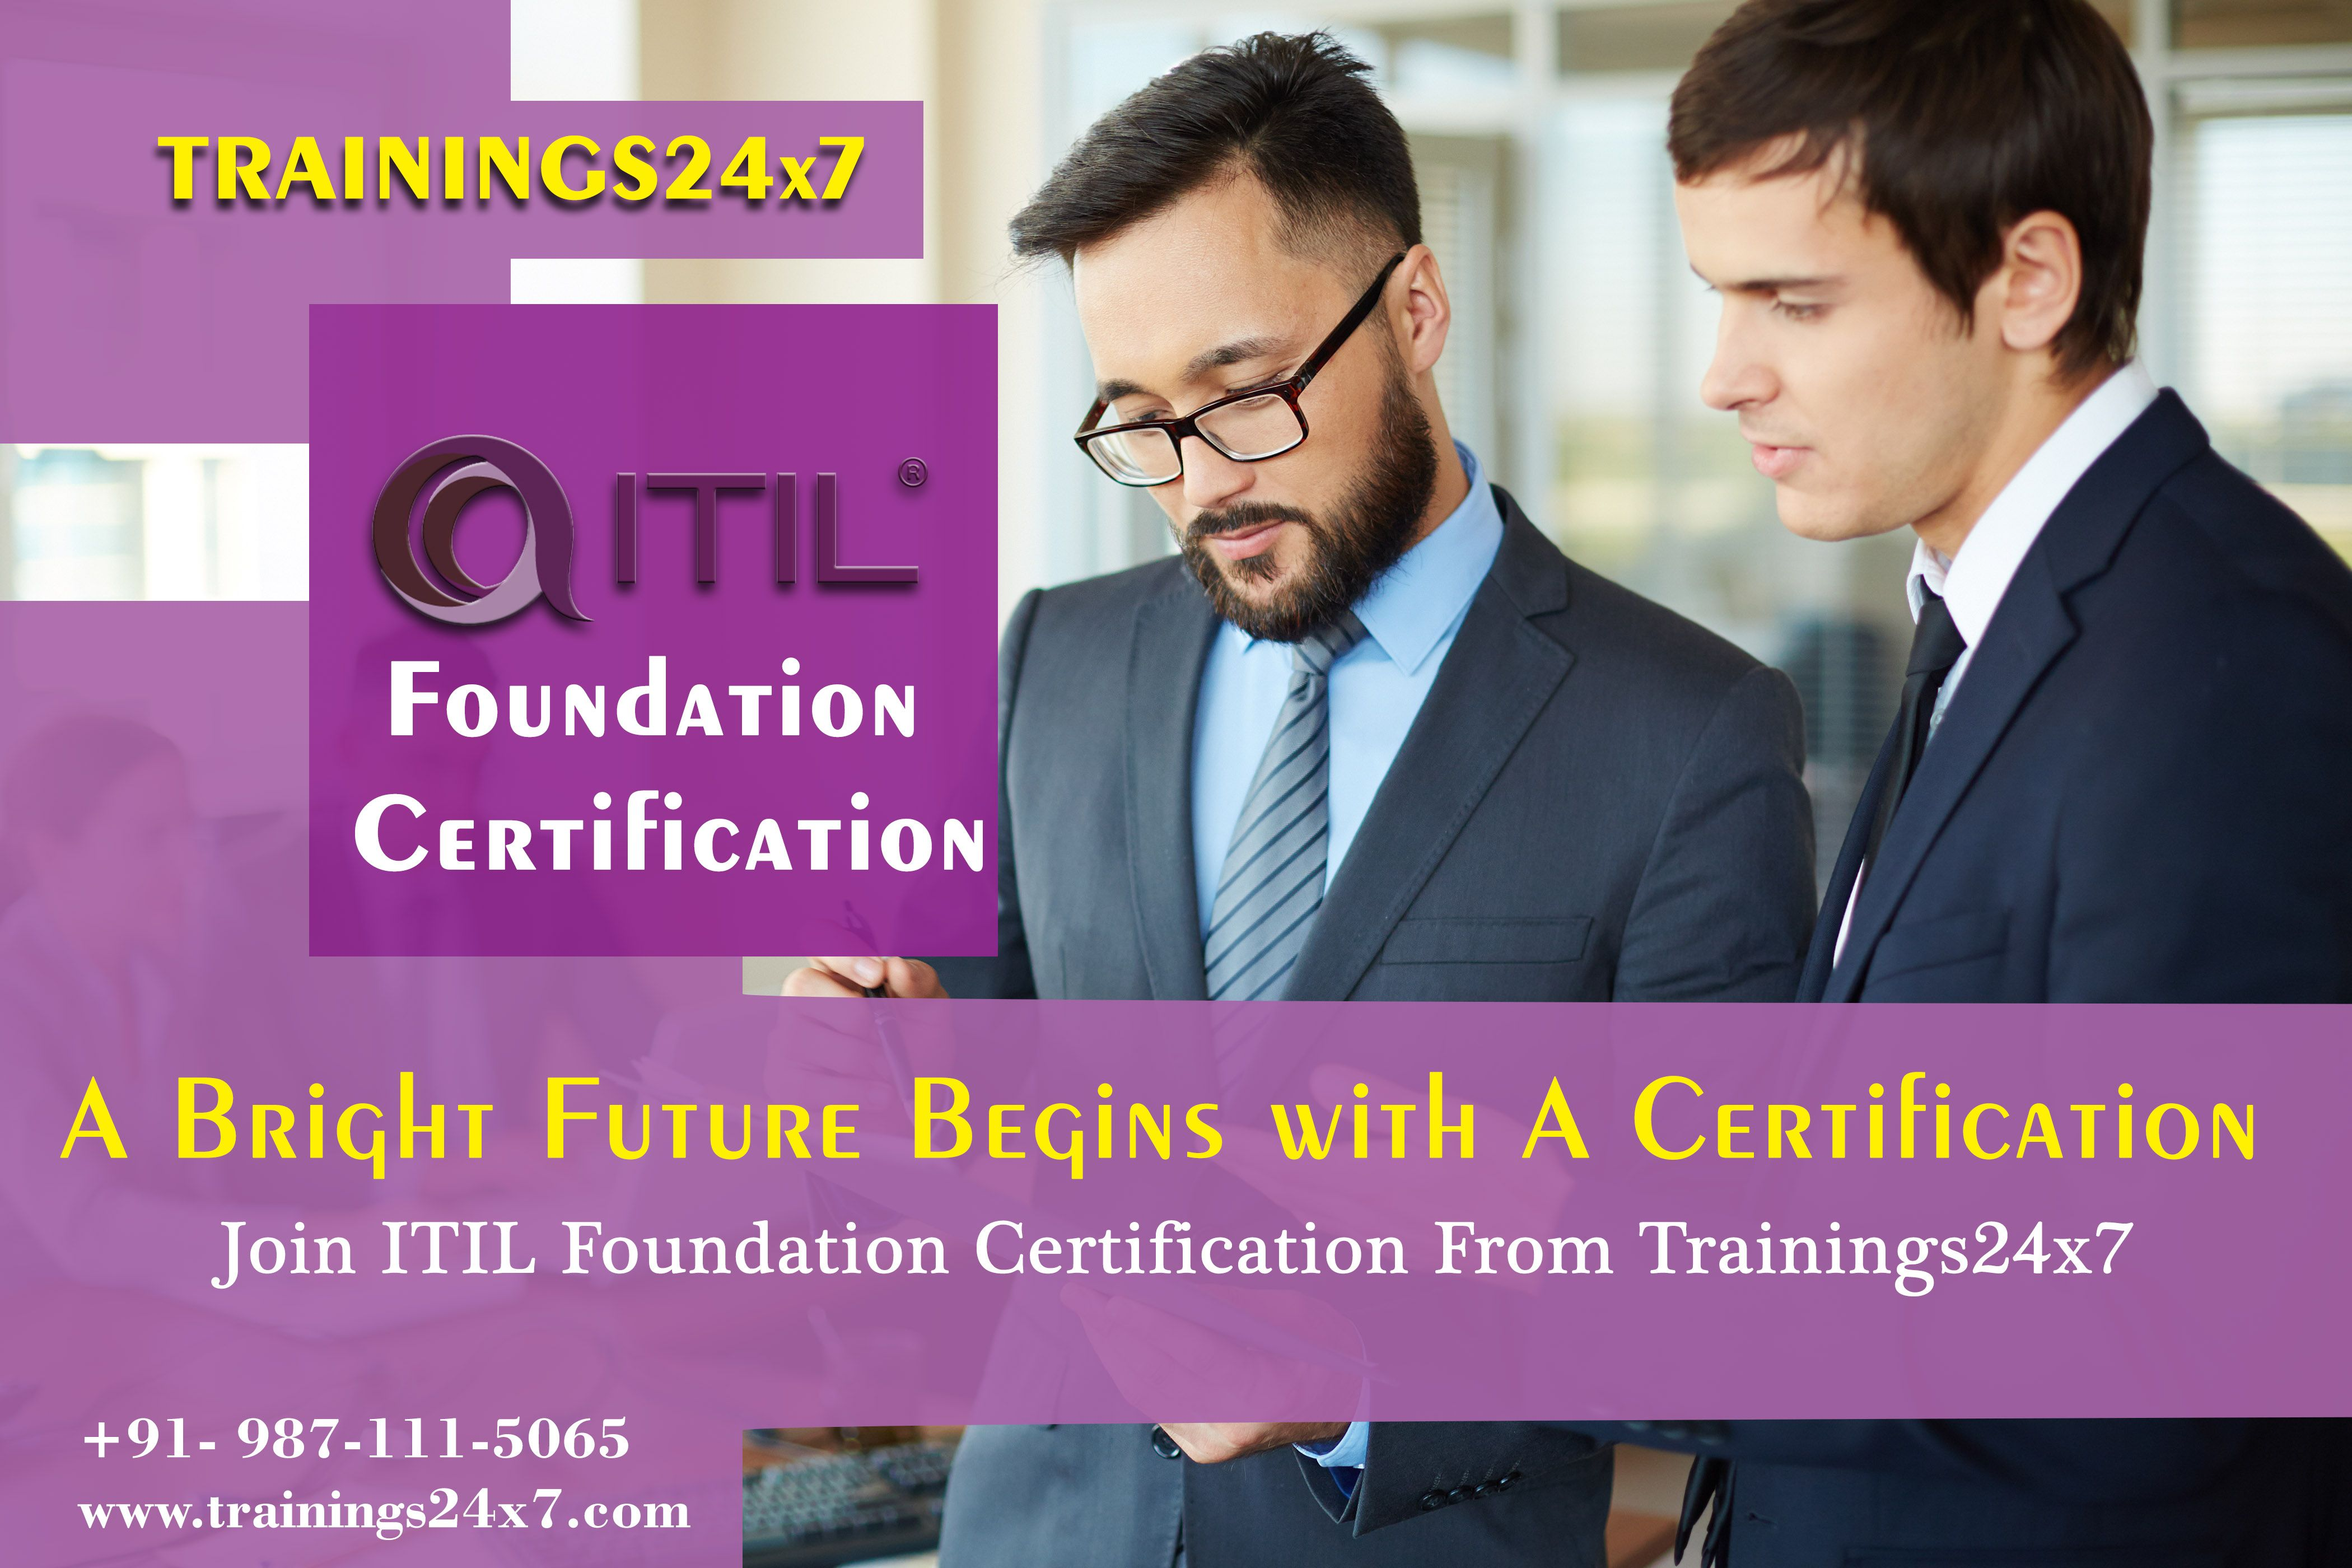 Itil Foundation Certification Training Join Our Upcoming Batch